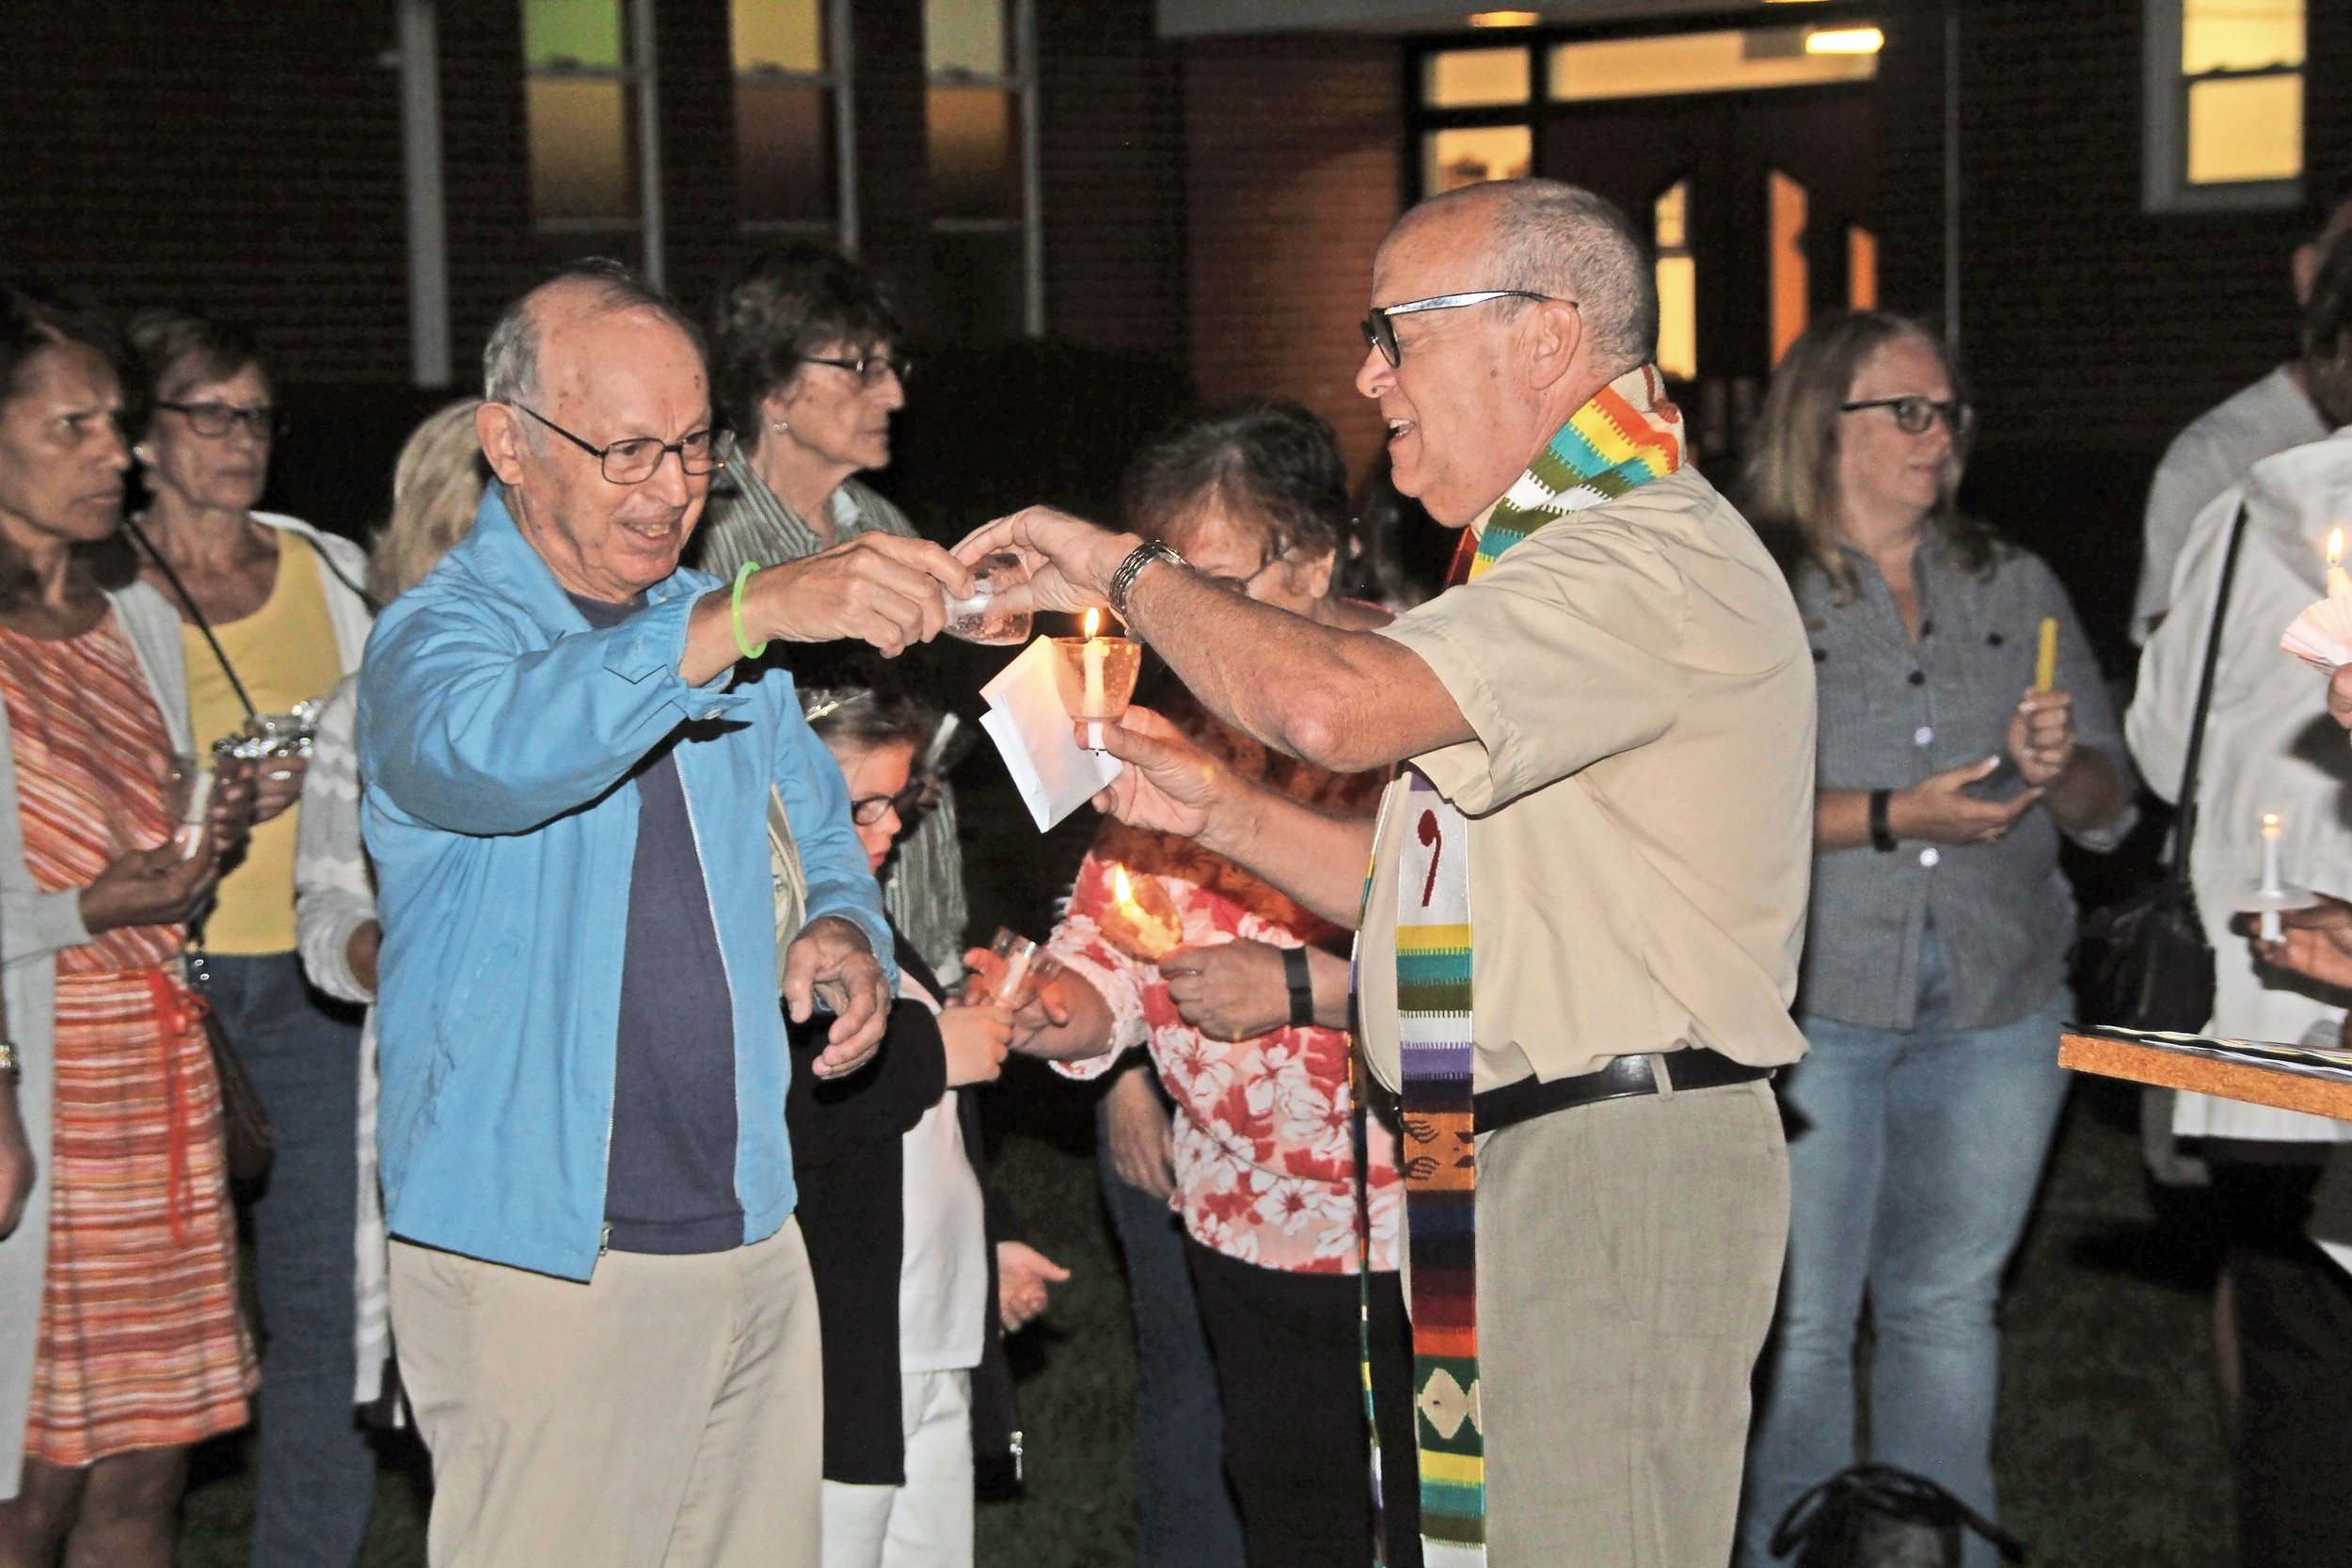 The Rev. Ron Garner, right, pastor of Wantagh Memorial Congregational, lit residents' candles using one flame to show that the community is united.